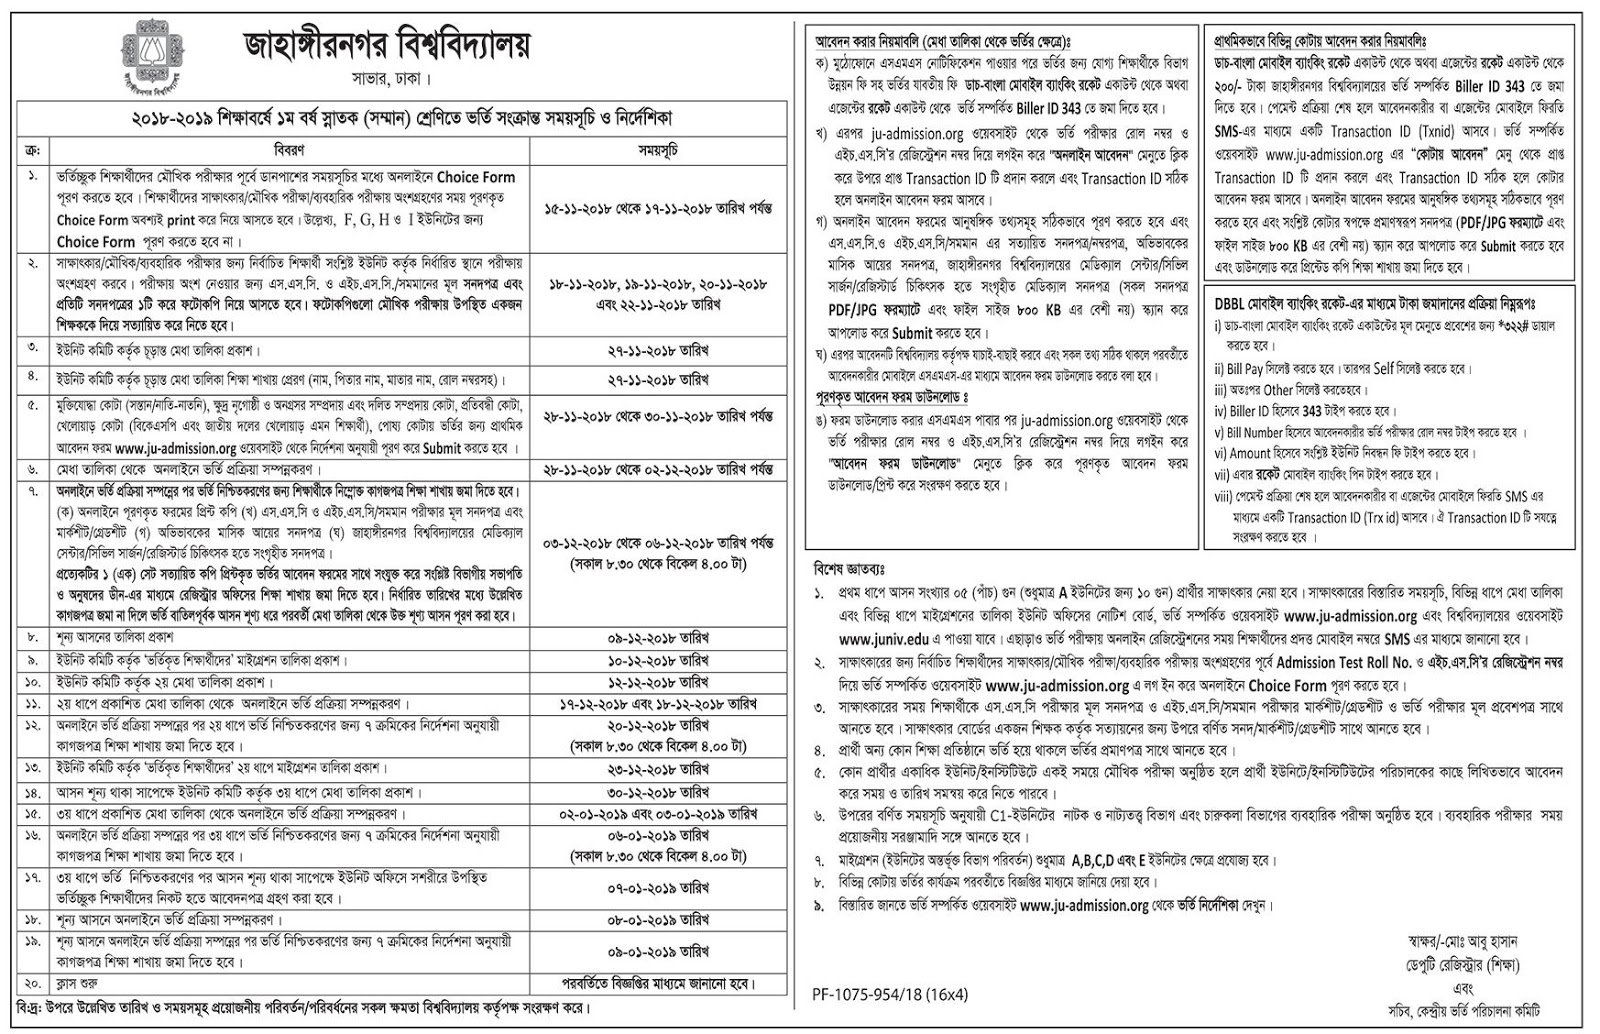 Jahangirnagar University Admission 2018-2019 Time Table